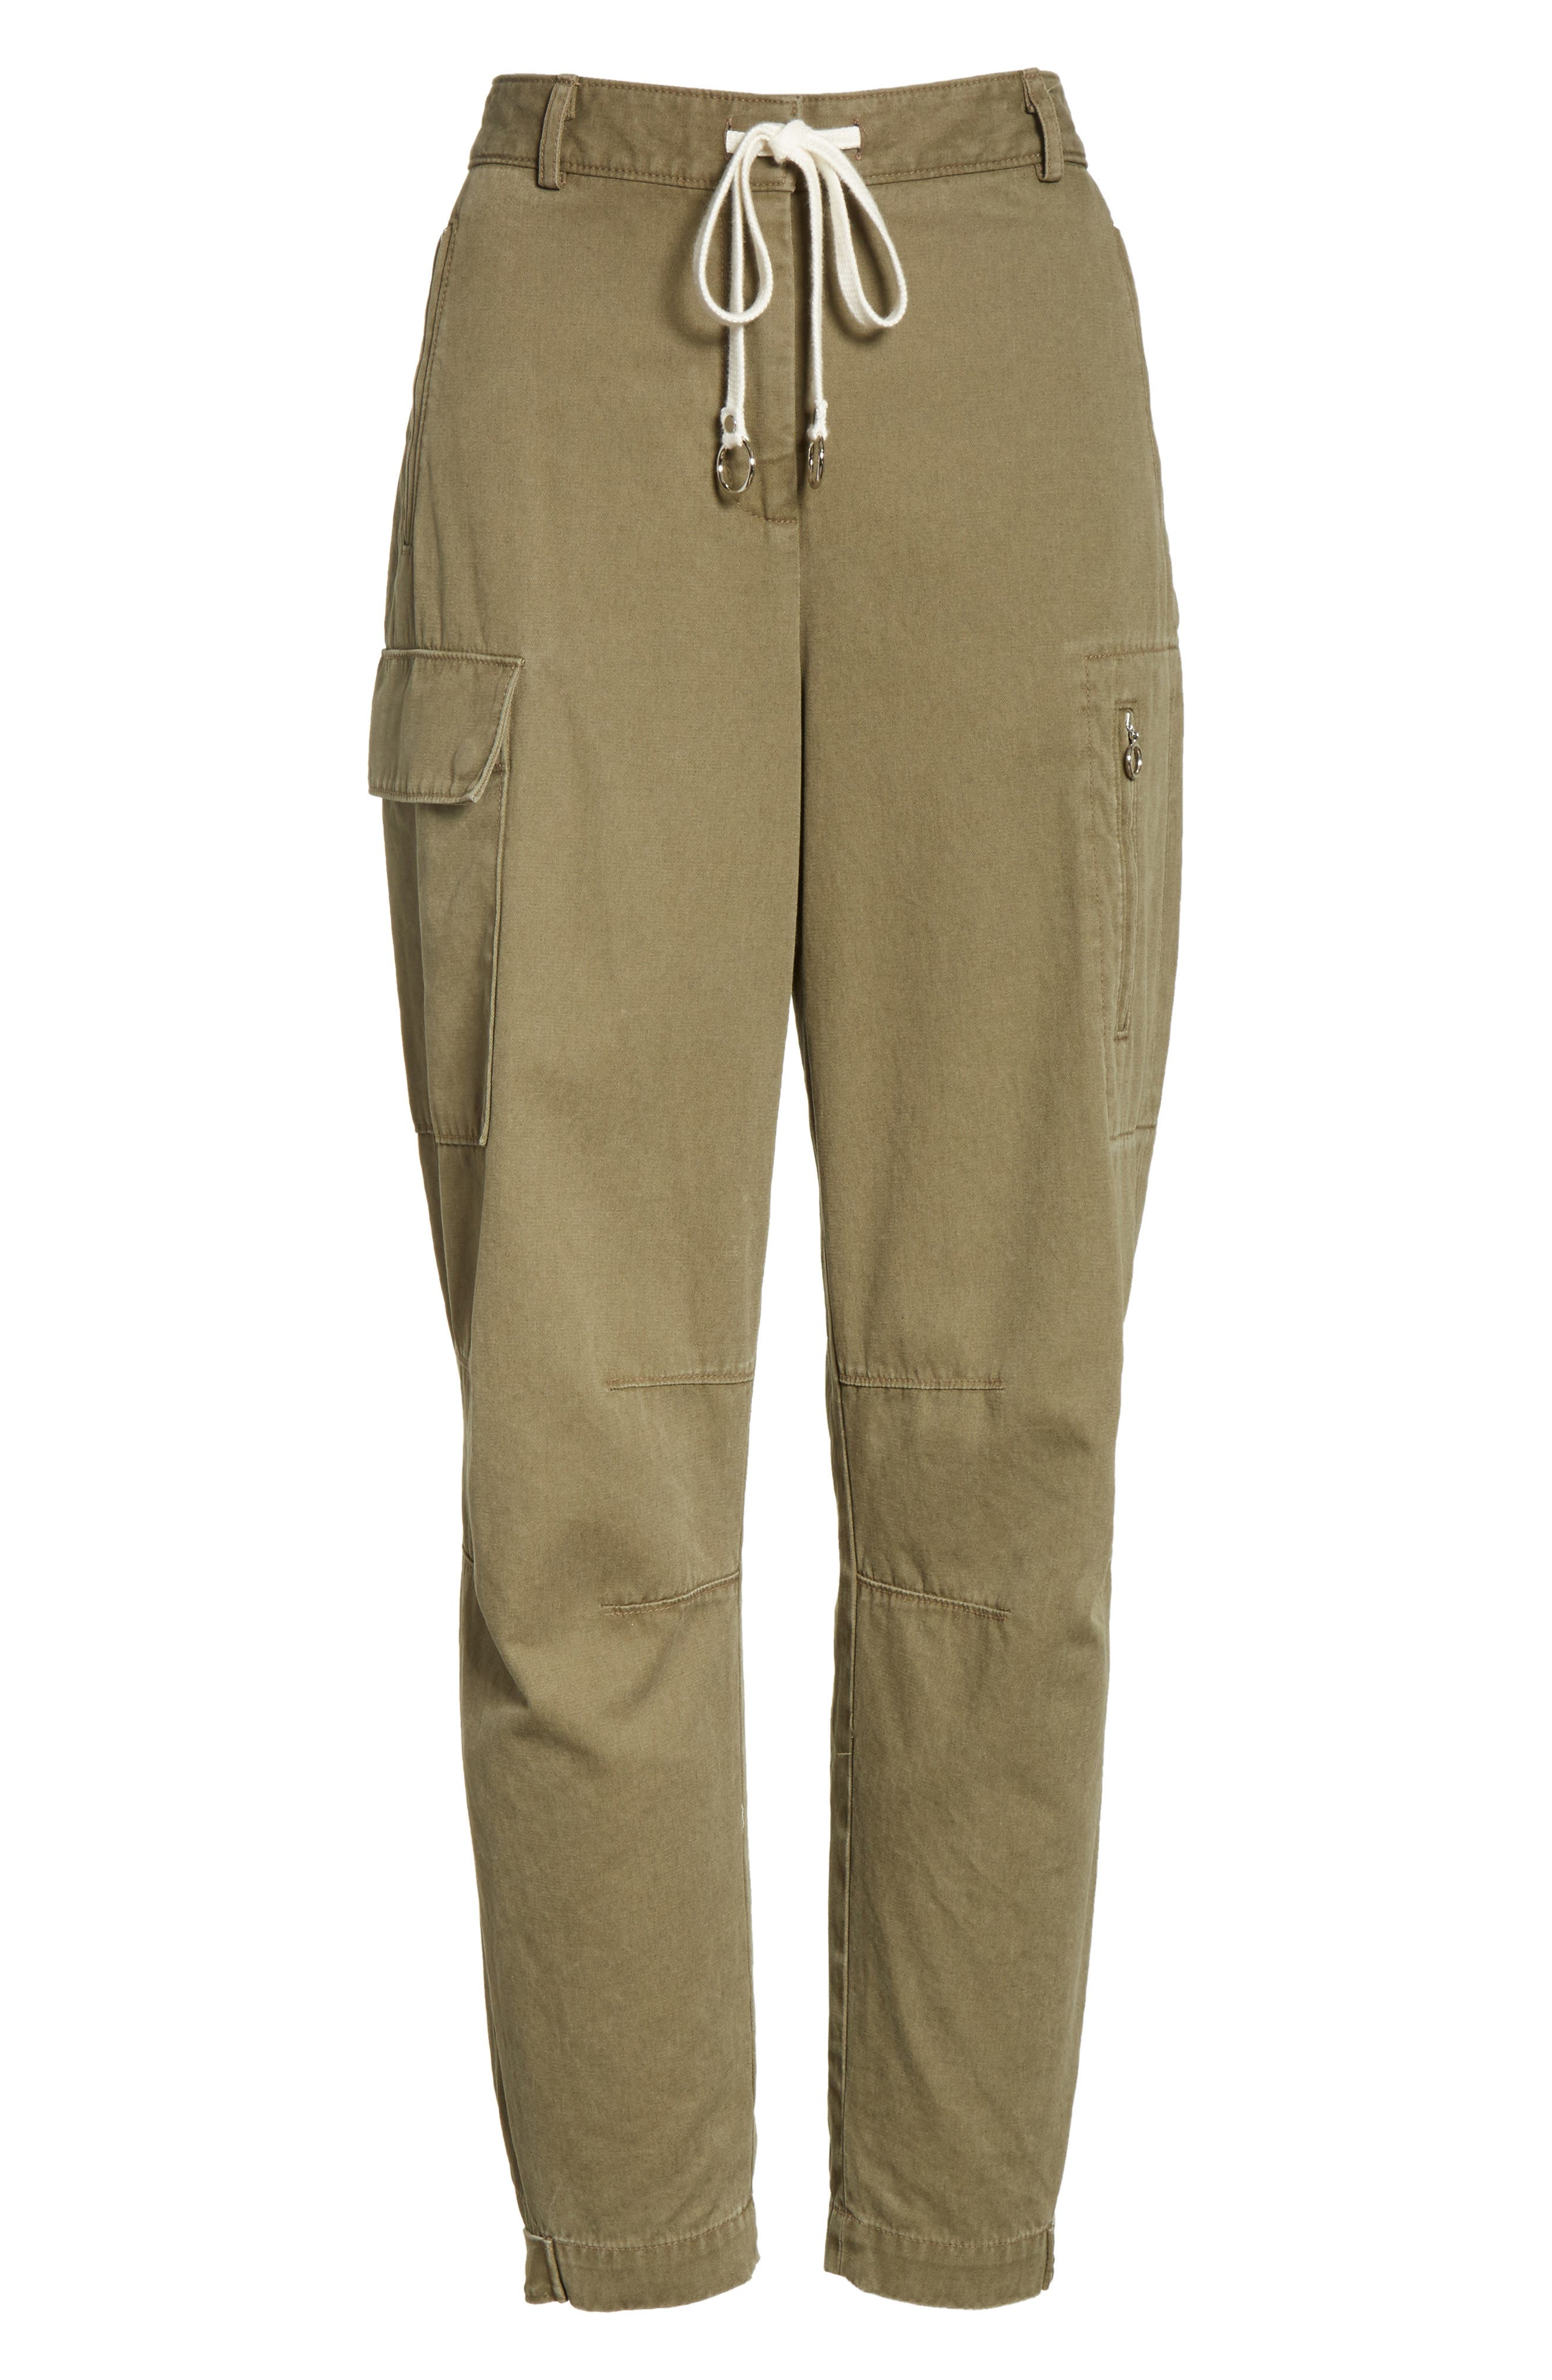 T by Alexander Wang Twill Cargo Pants,                             Alternate thumbnail 6, color,                             309